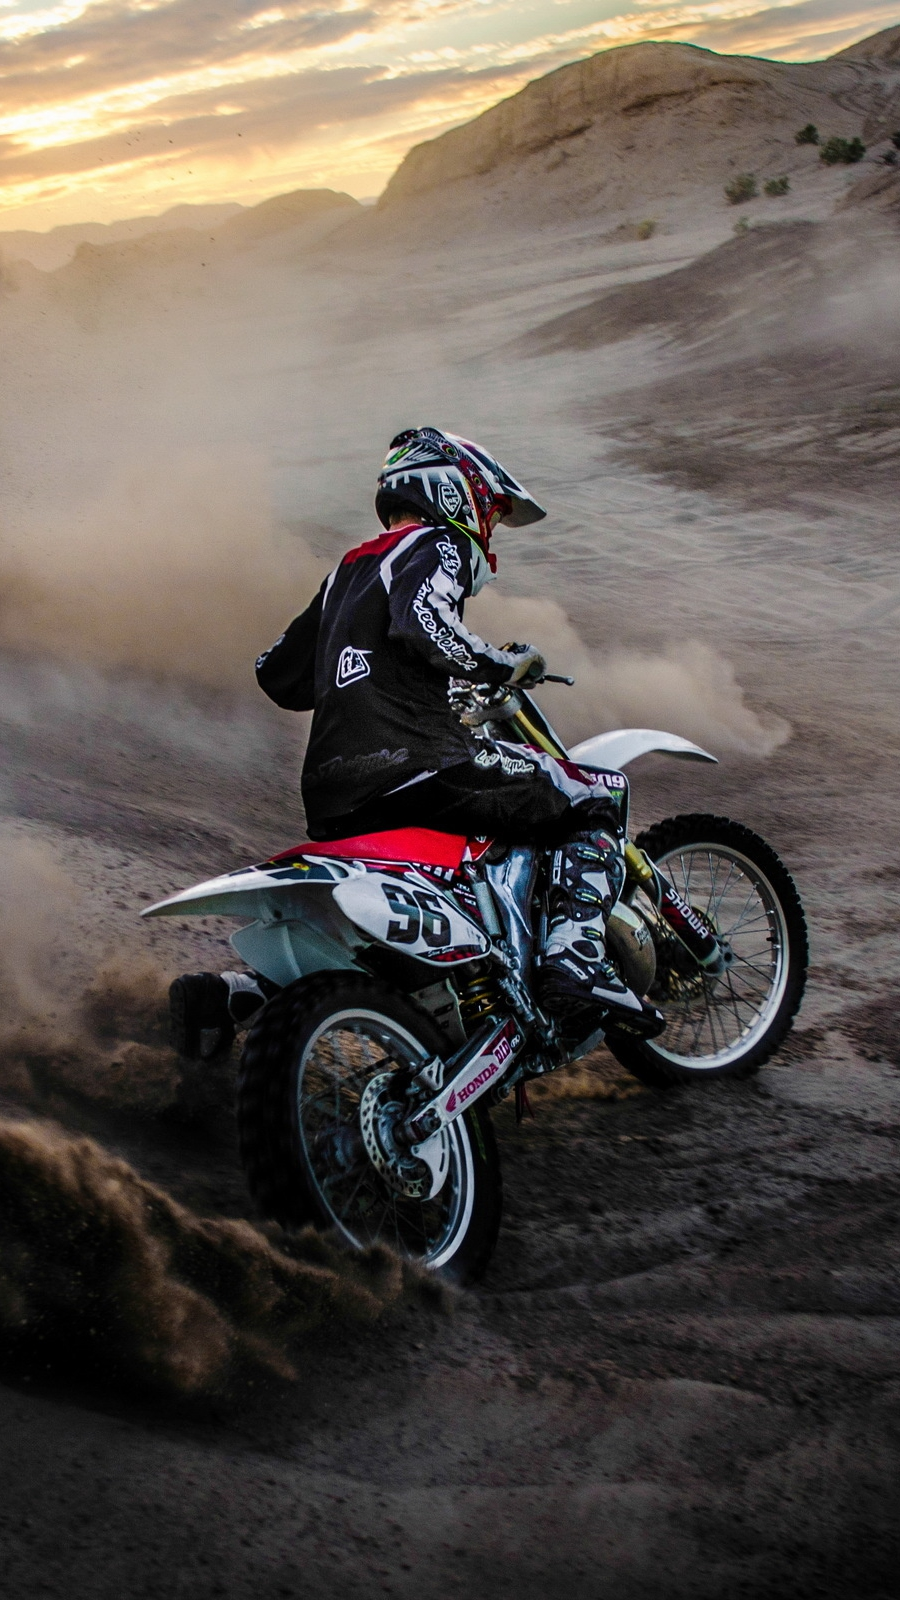 Cute Girl Wallpapers For Iphone Motocross Mudding Iphone Wallpaper Iphone Wallpapers